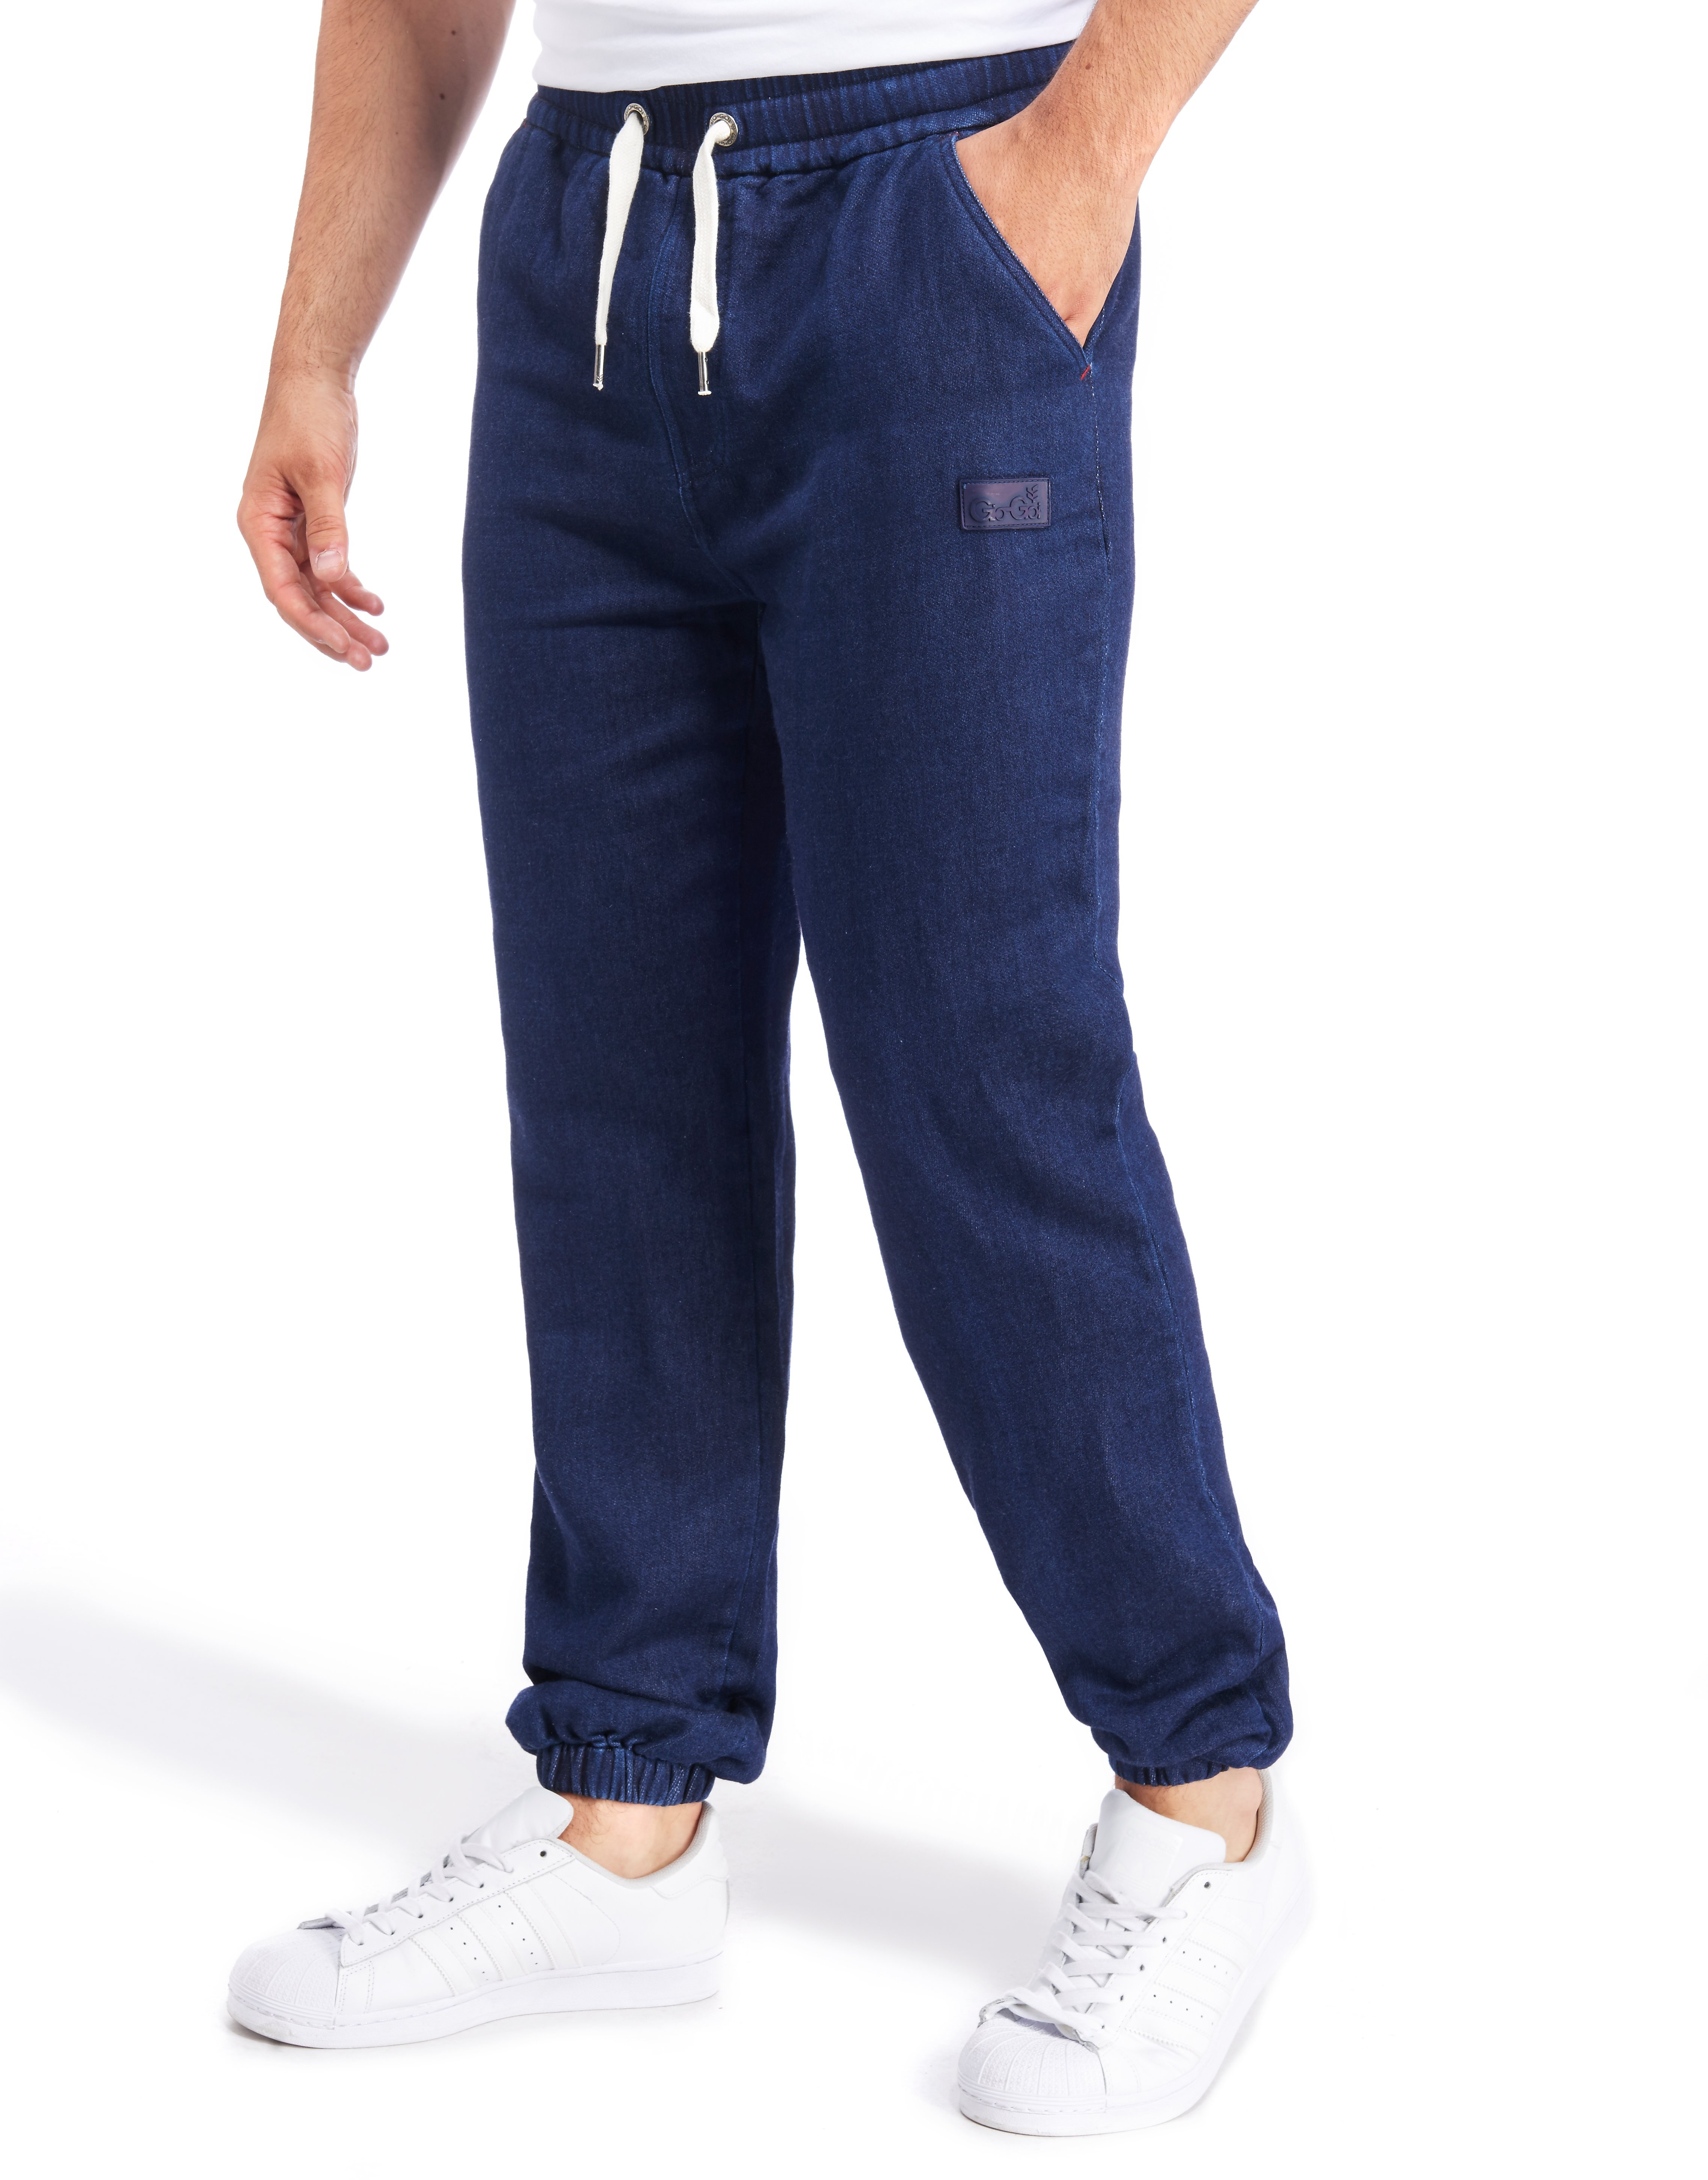 Gio-Goi Cholton Denim Jogging Pants